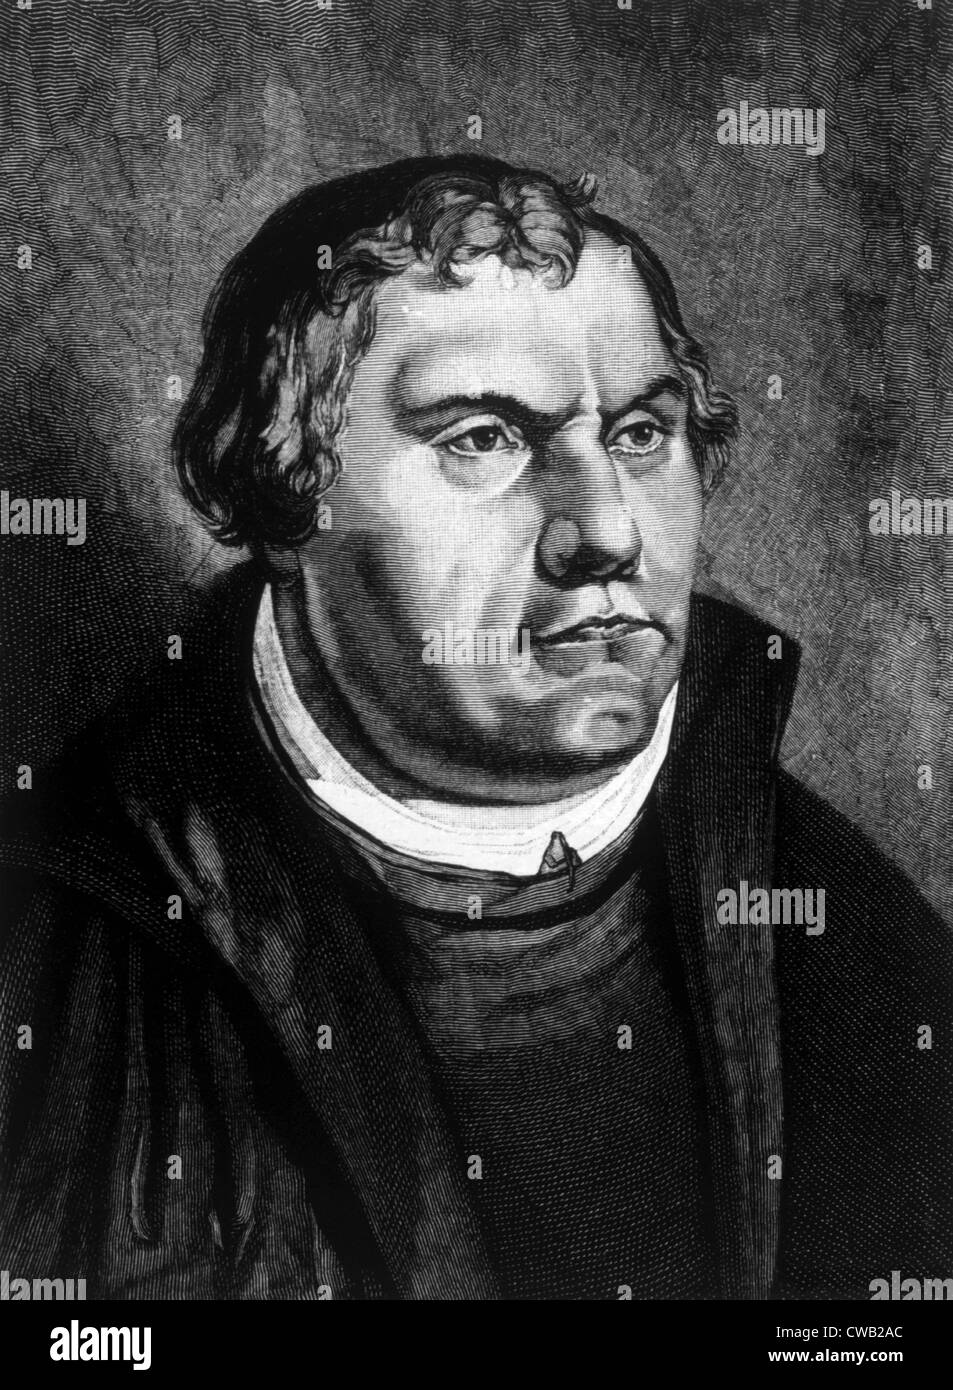 Martin Luther (1483-1546), engraving from the painting by Lucas Cranach,  1885